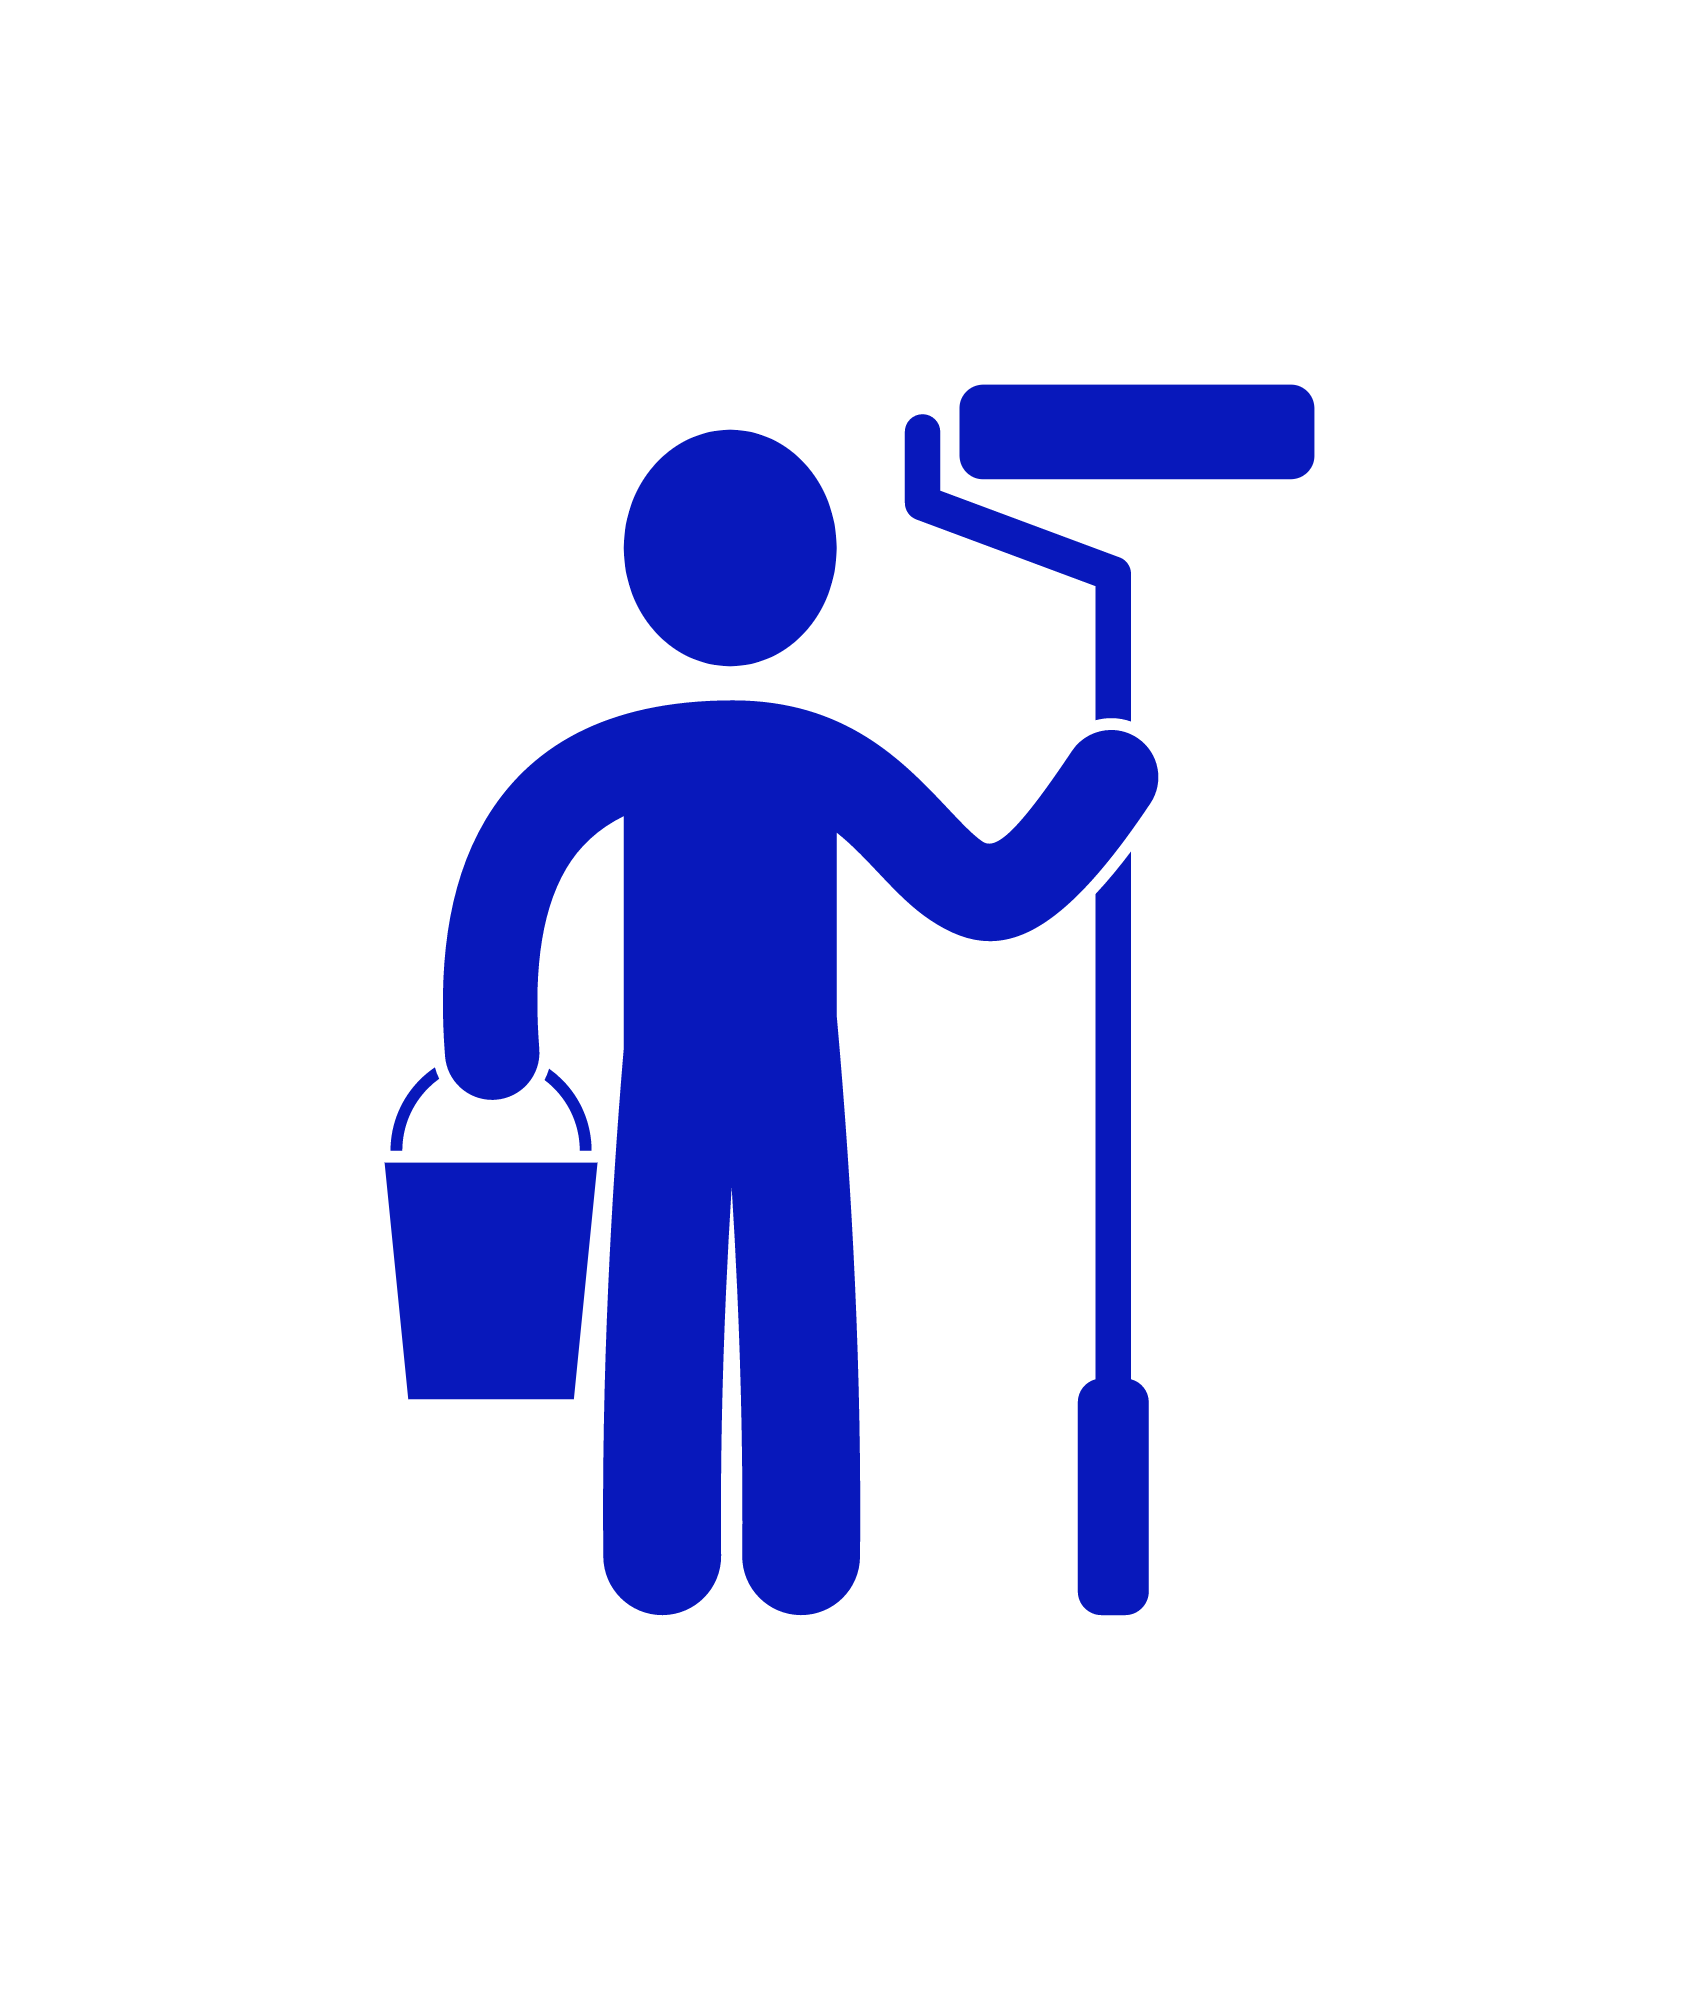 Your project has started! We'll keep your home or office clean and tidy as we work!